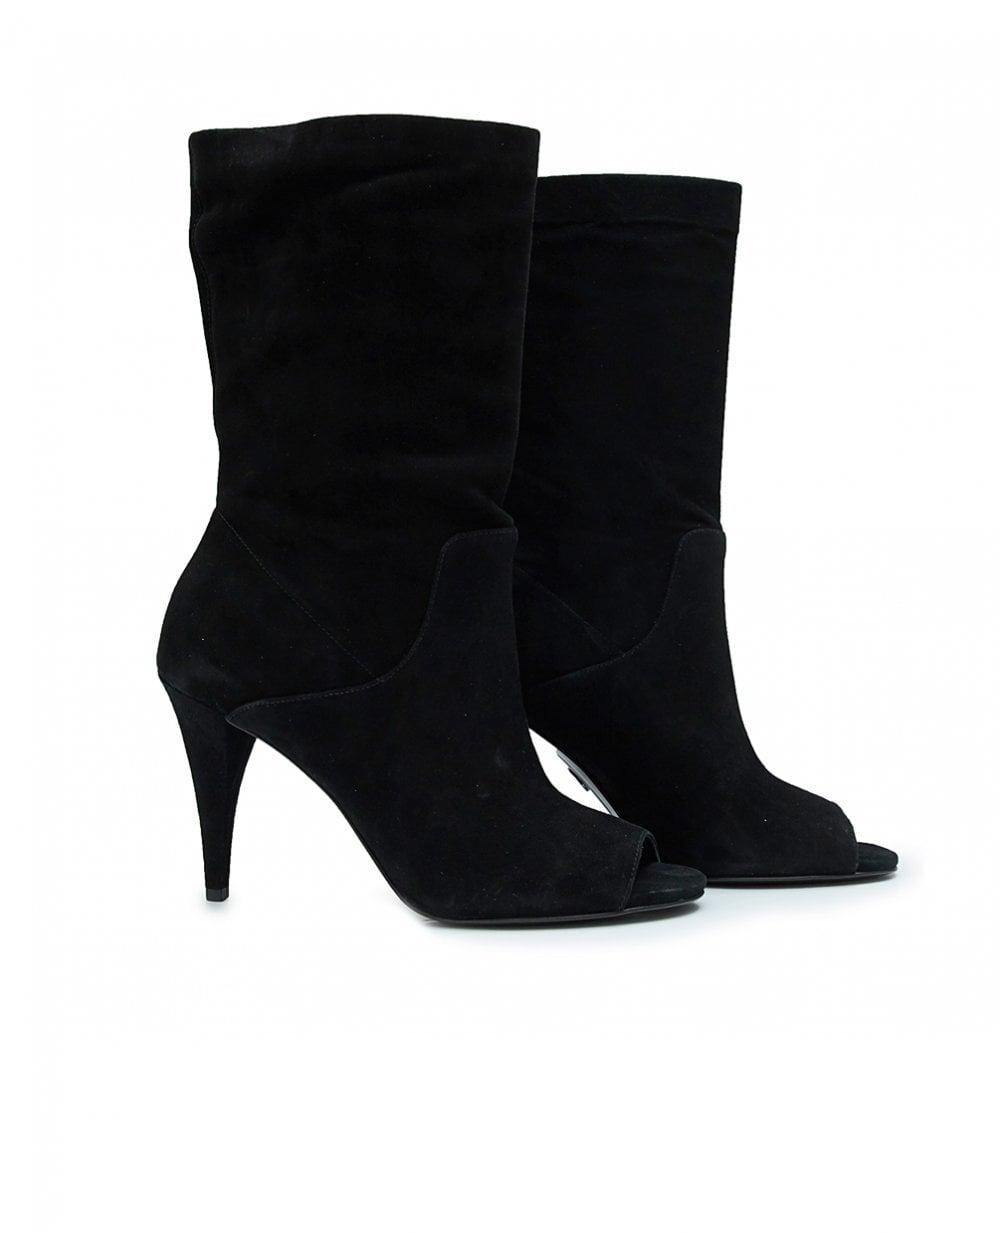 042f2d0f545d8 Lyst - Michael Kors Elaine Open Toe Booties in Black